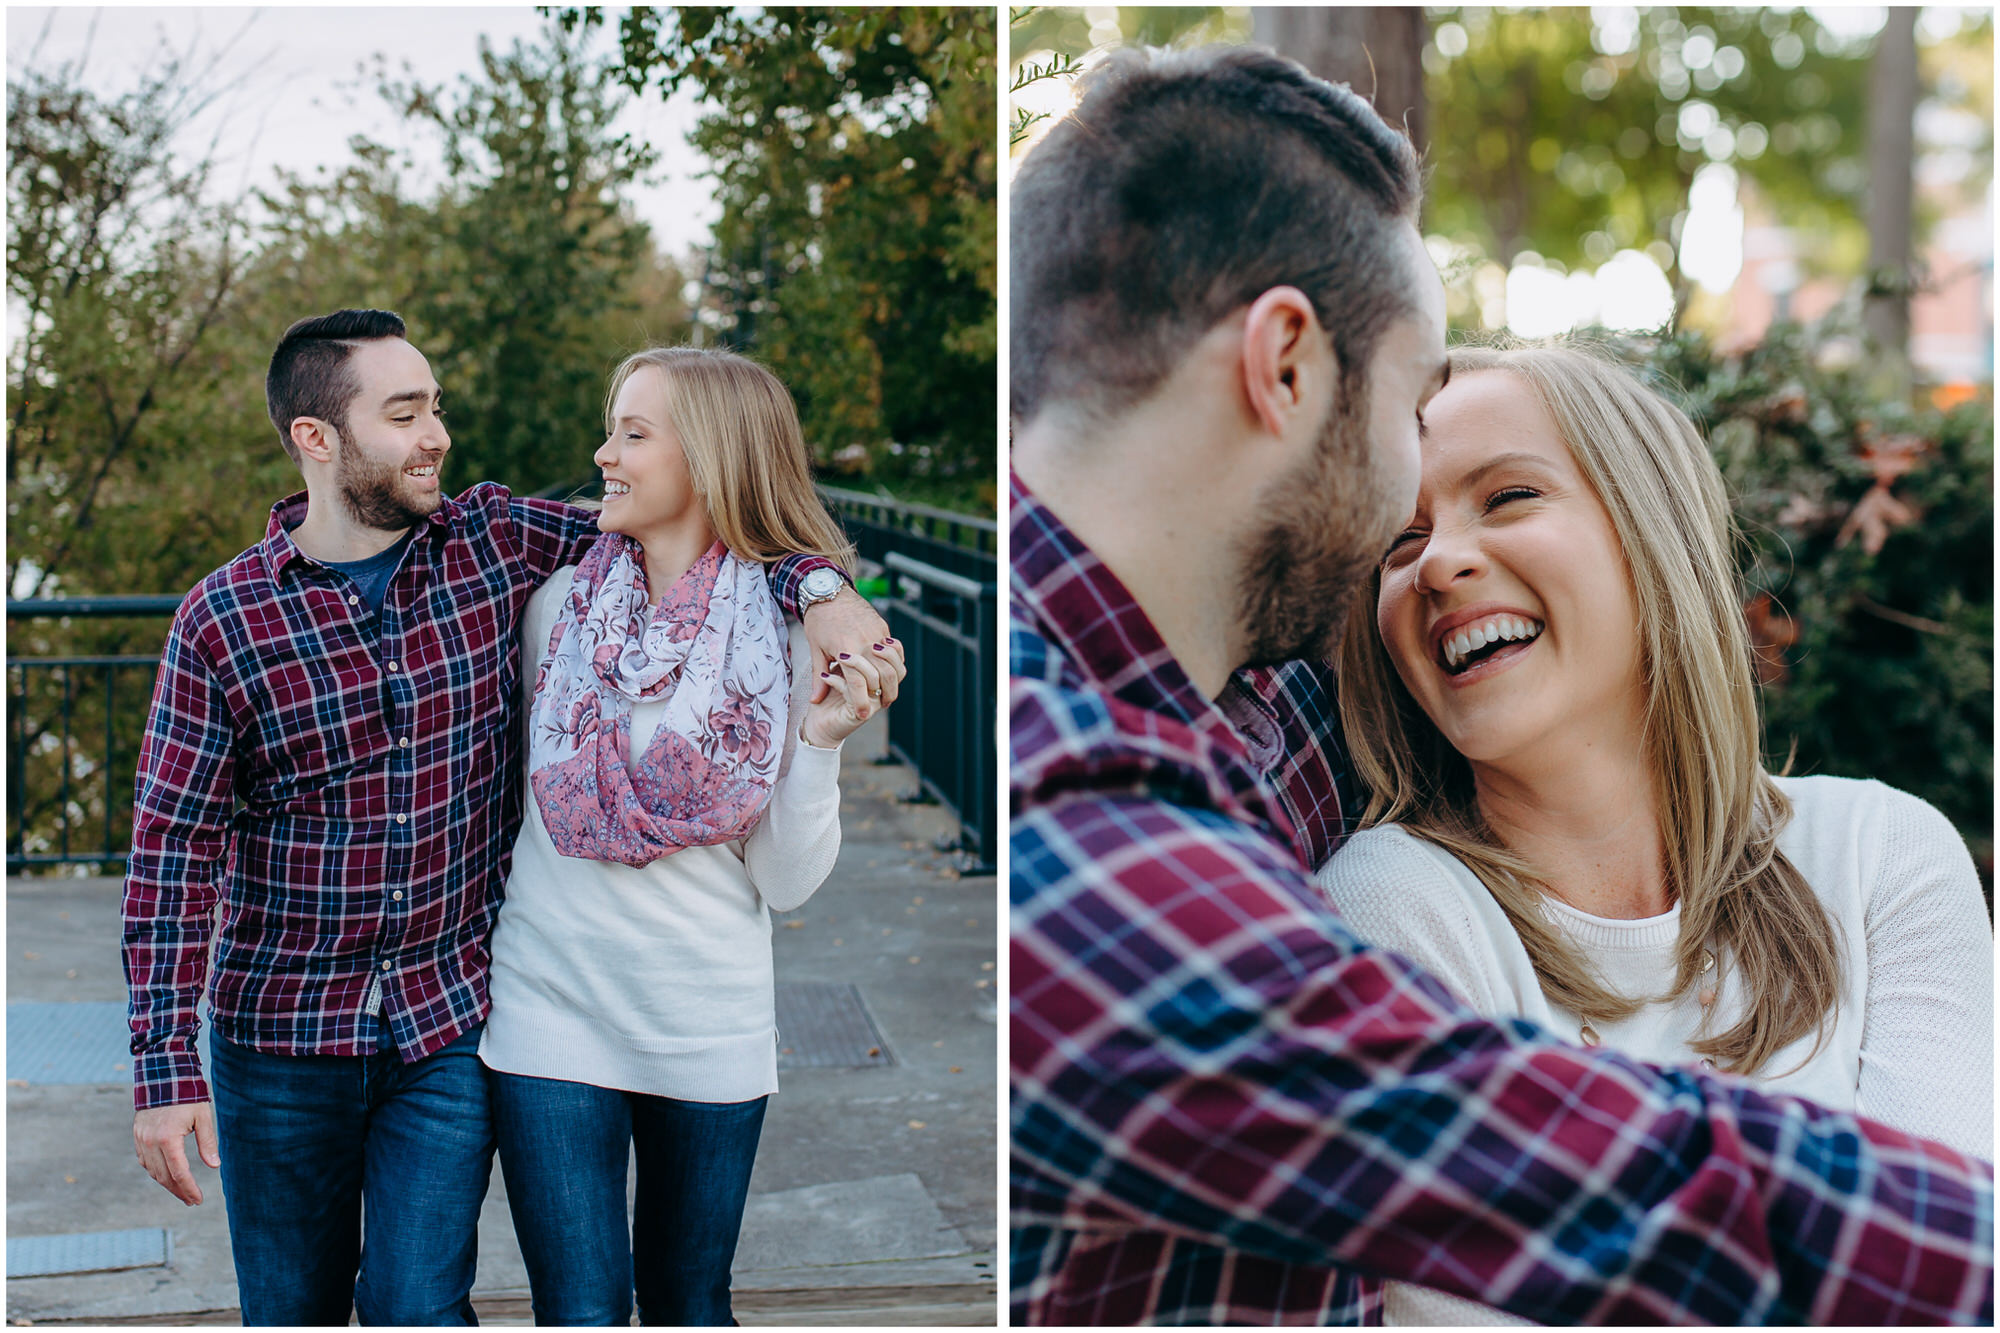 Happy couple walks together along the river and sits laughing in the park - by New Hampshire wedding photographer Ashleigh Laureen Photography in Lowell, Massachusetts